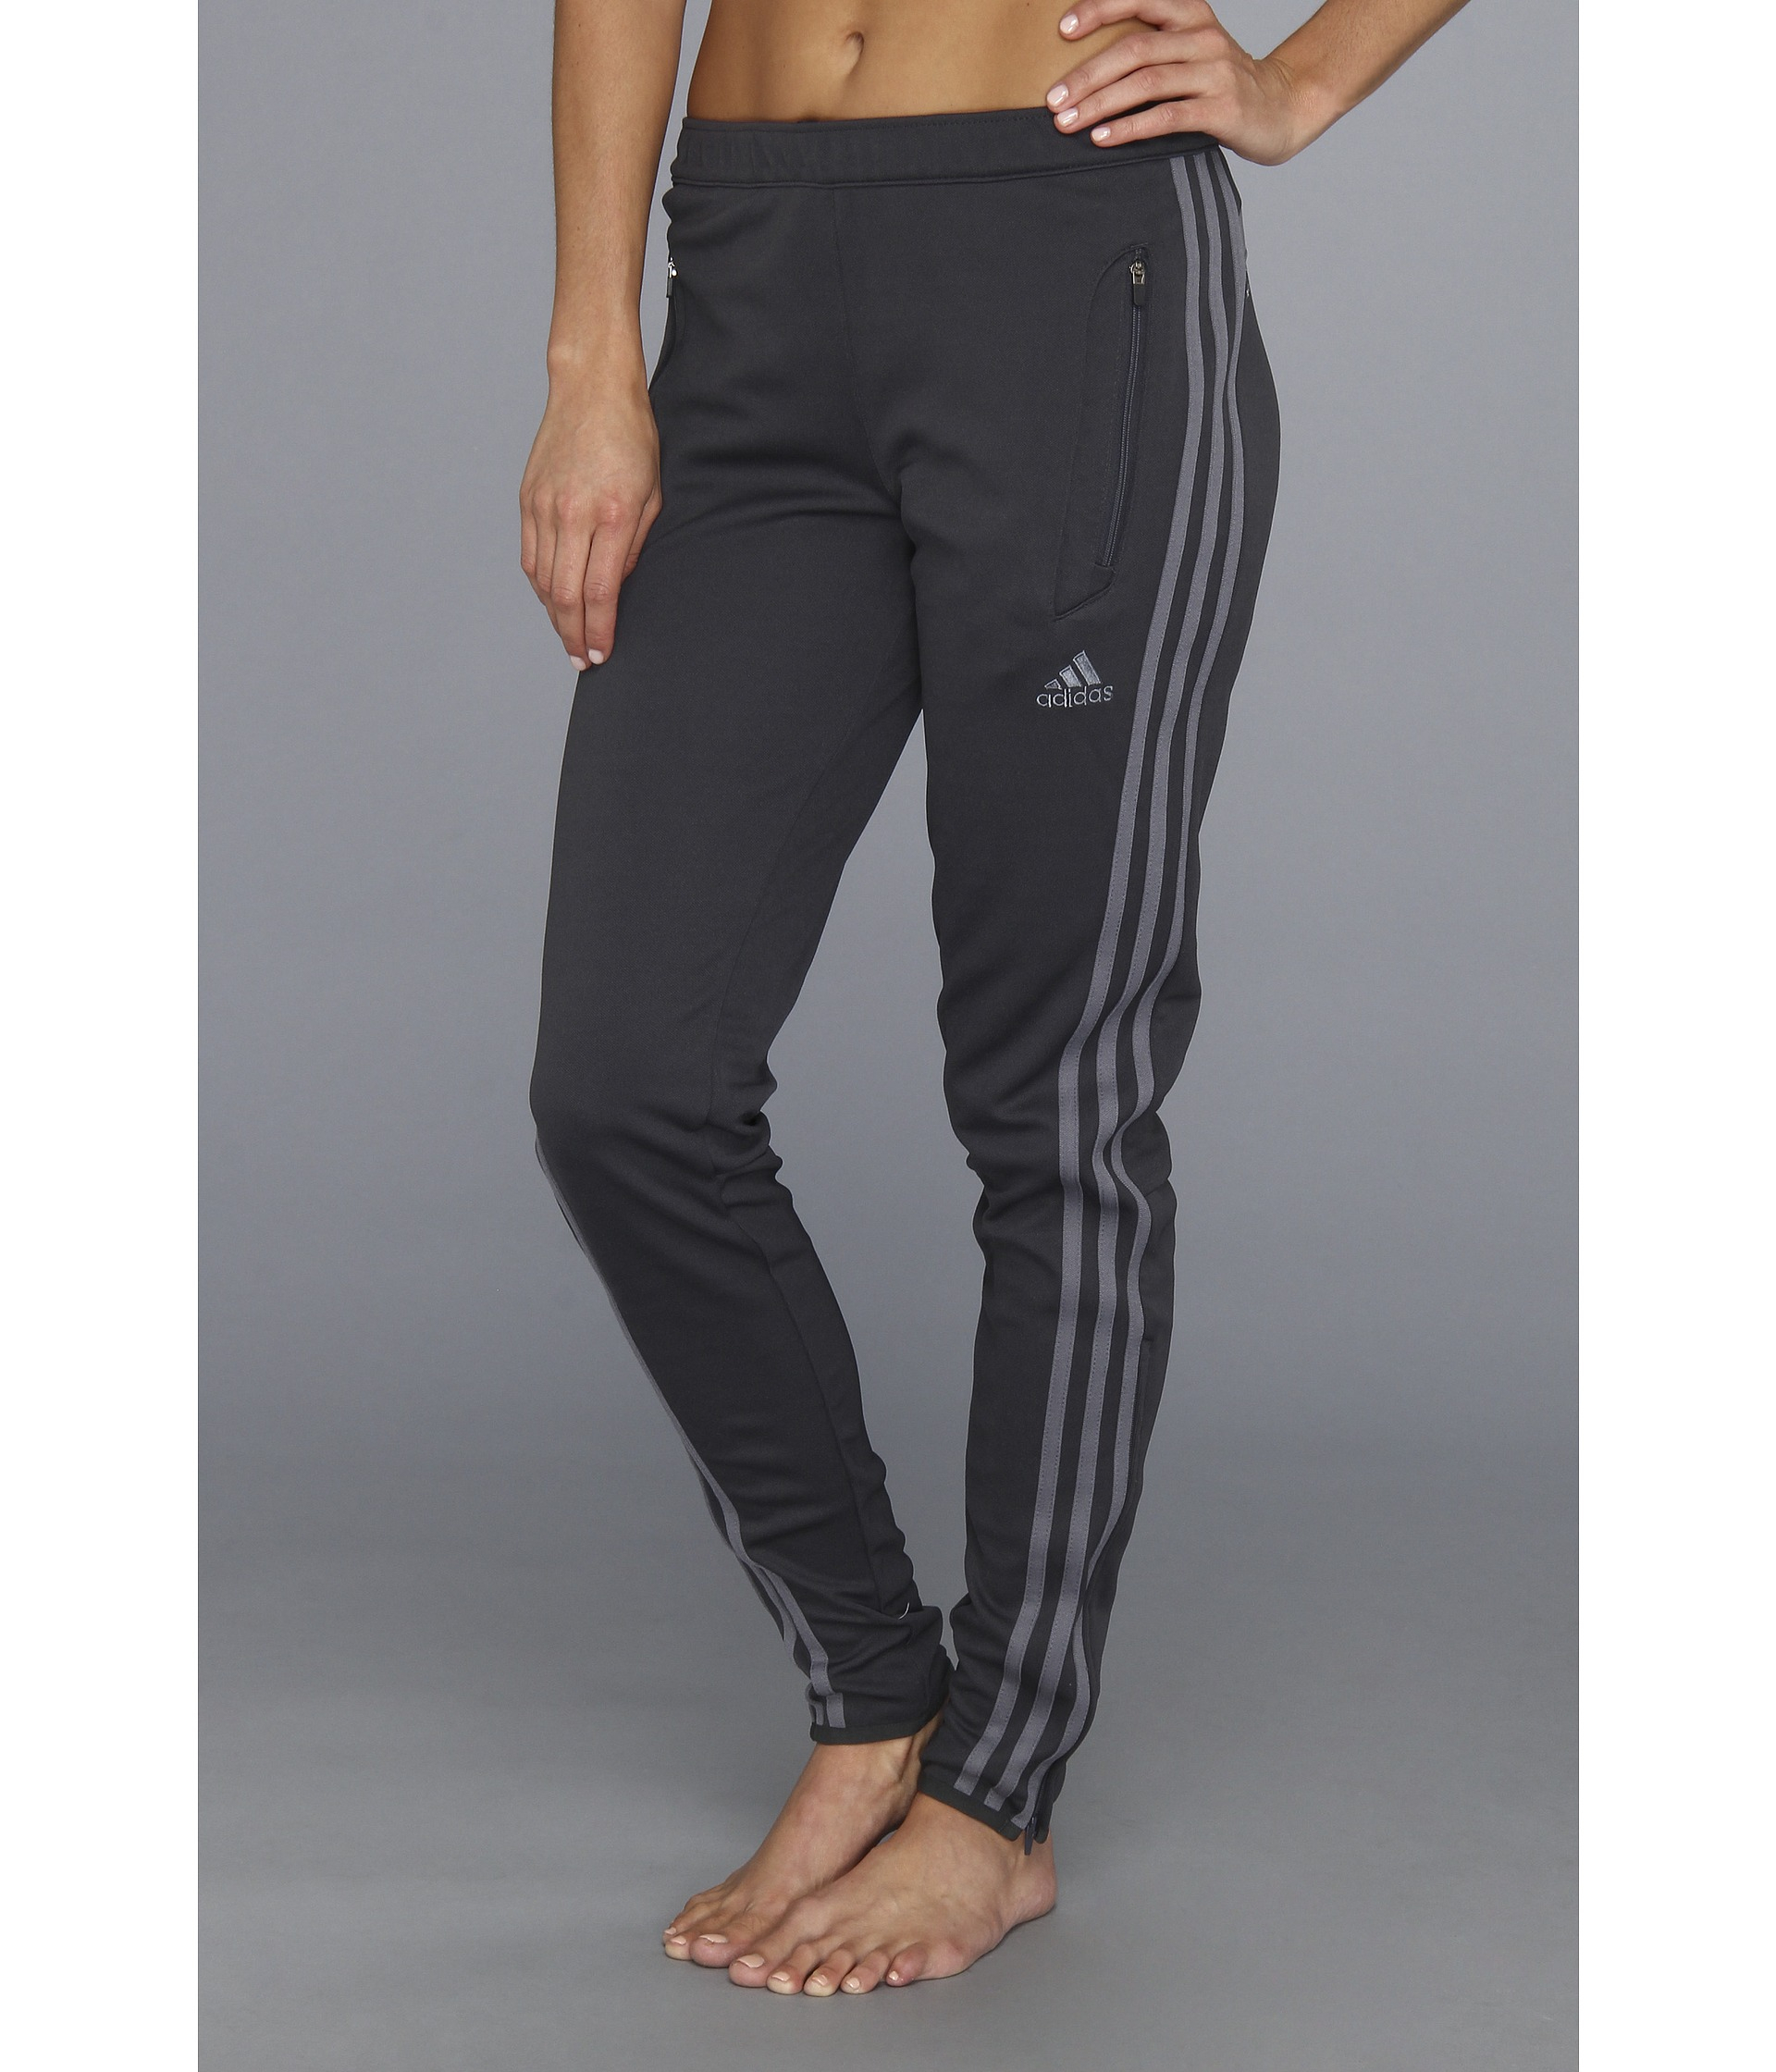 Elegant  Adidas Pants On Pinterest  Adidas Shorts Adidas And Soccer Pants